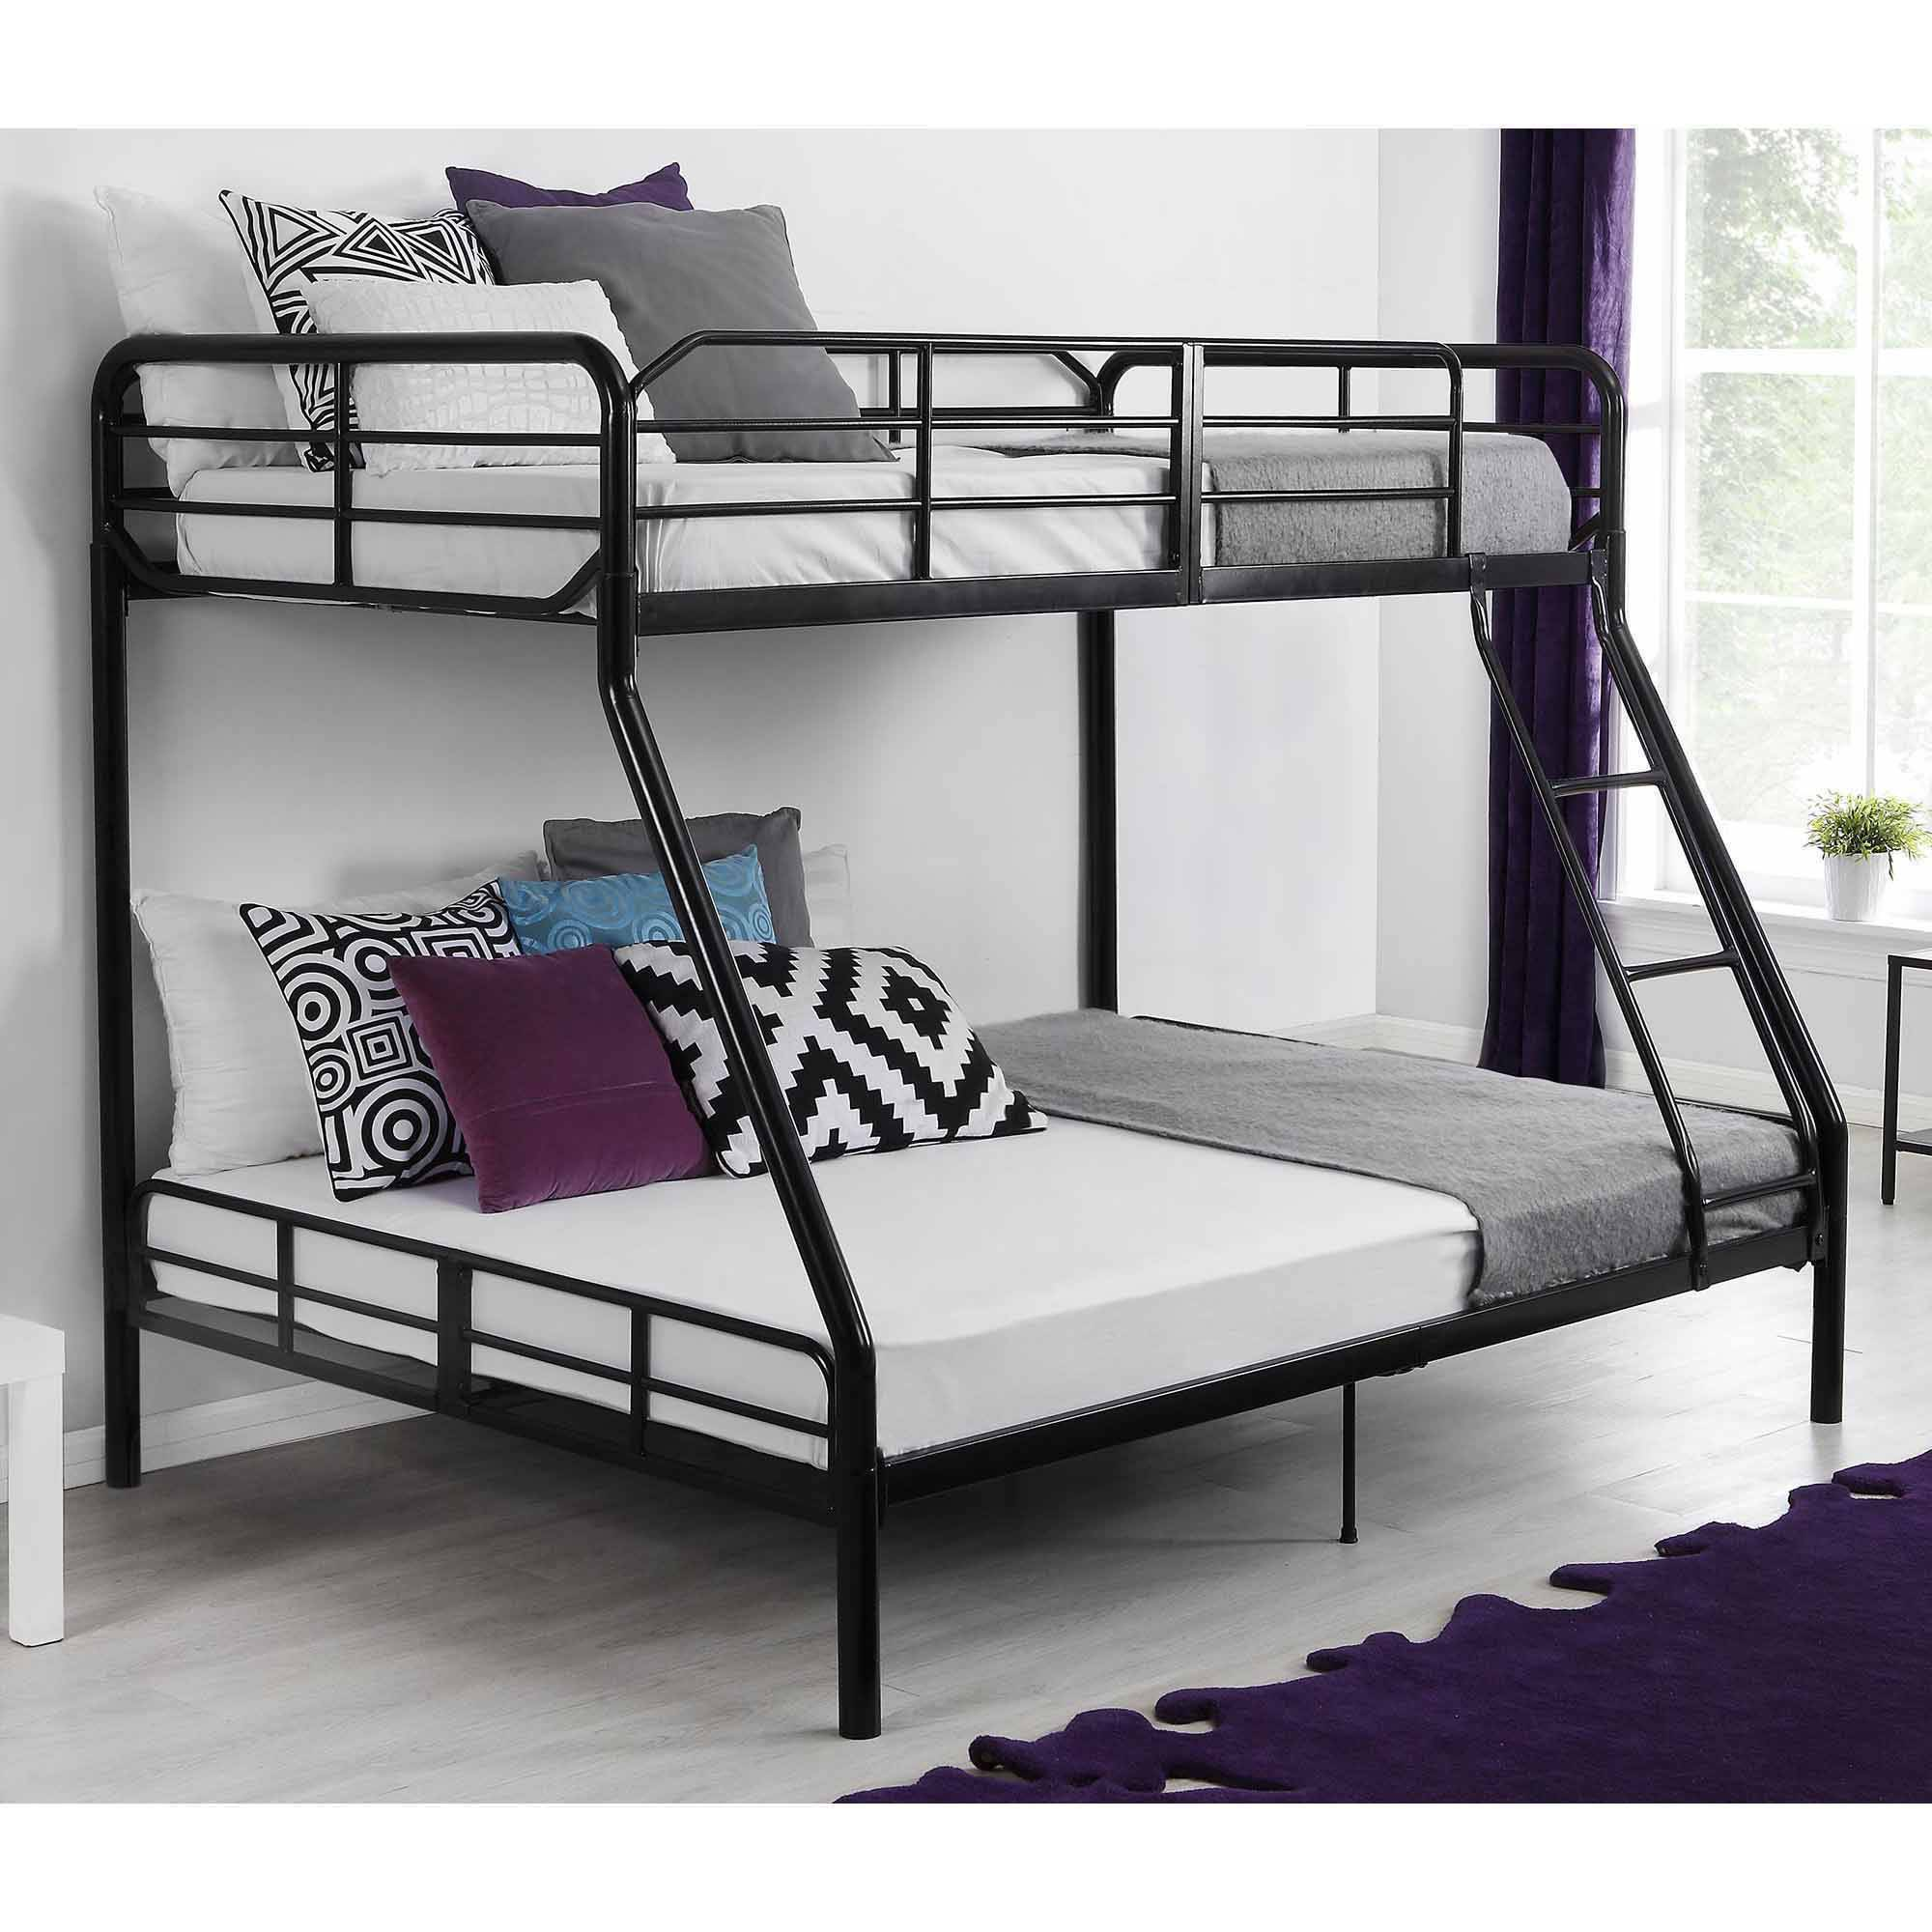 Pillow clipart bunkbed Homes and com Bunk Twin